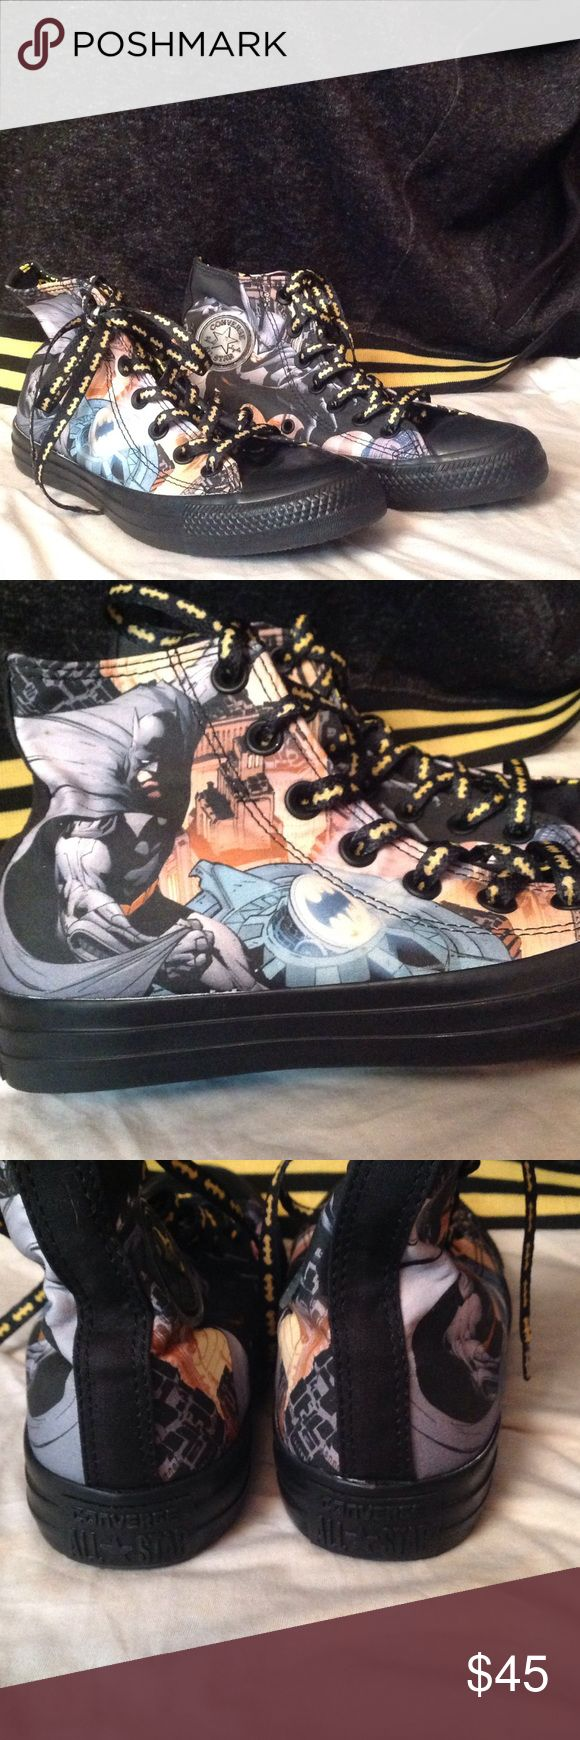 Brand New Batman Converse W/Box Brand new batman converse with box and extra laces. Size 6 women's and 4 men's. I wore these for 20 minutes before I realized them being half a size too small hurt too bad, so barely worn 😂. Converse Shoes Sneakers